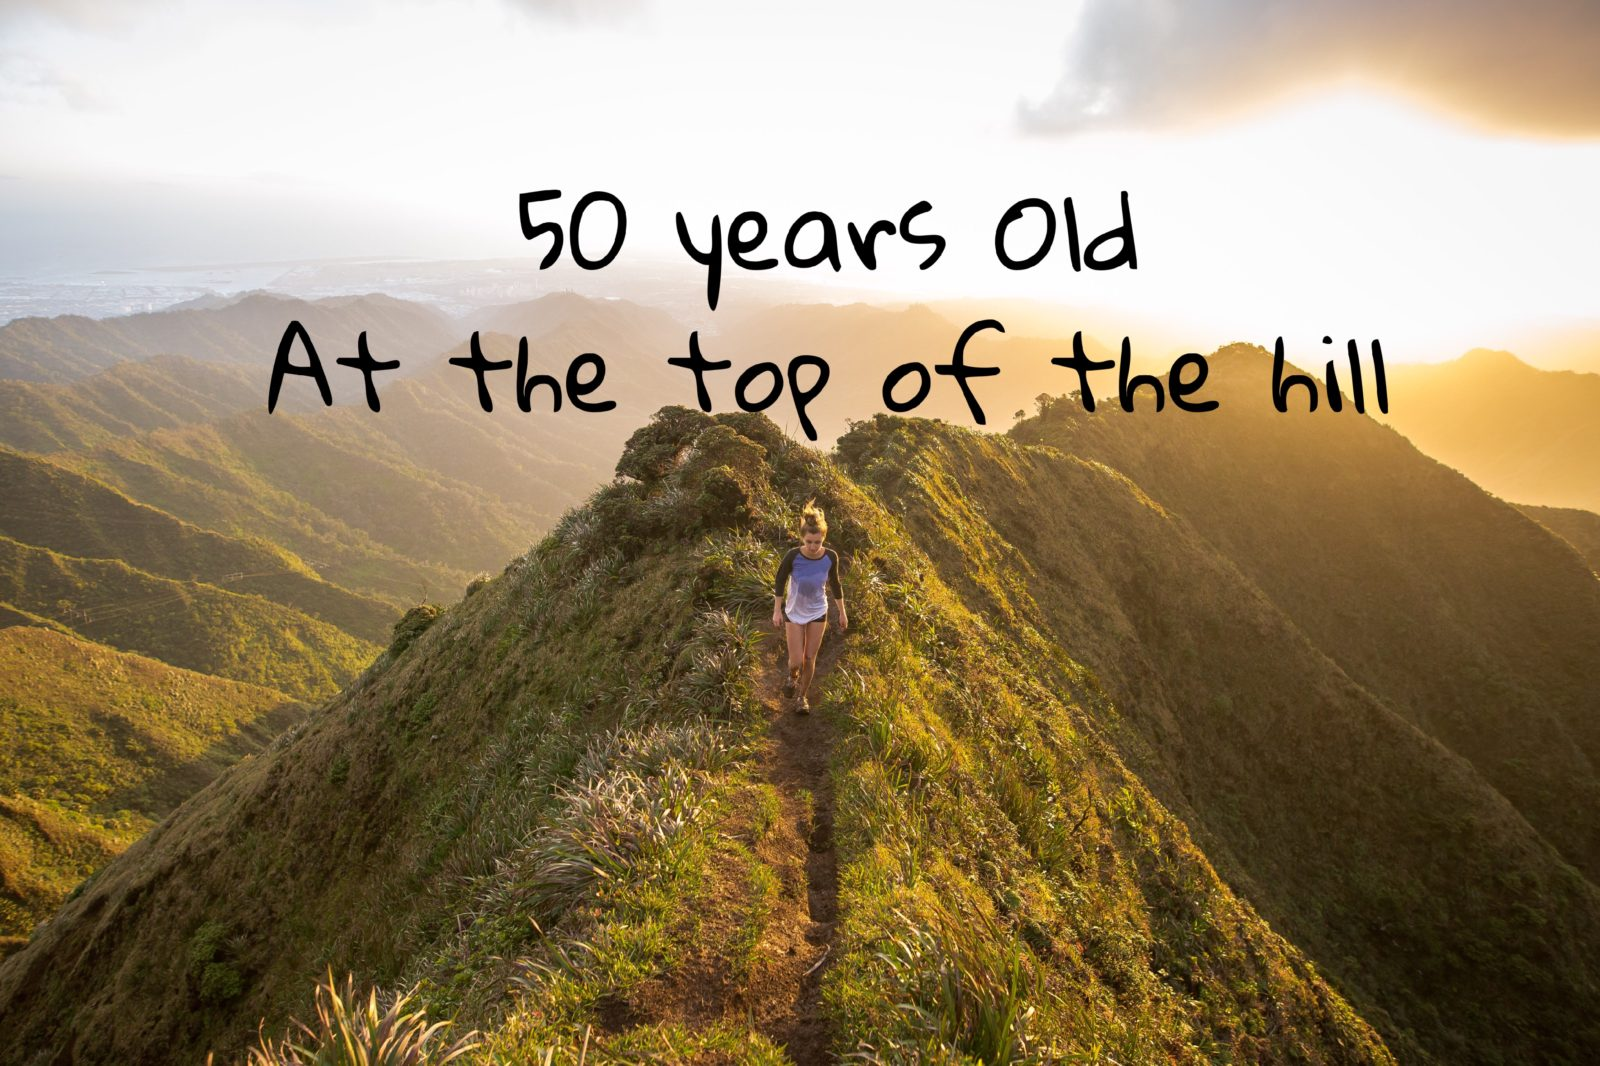 50 Years old at the top of the hill